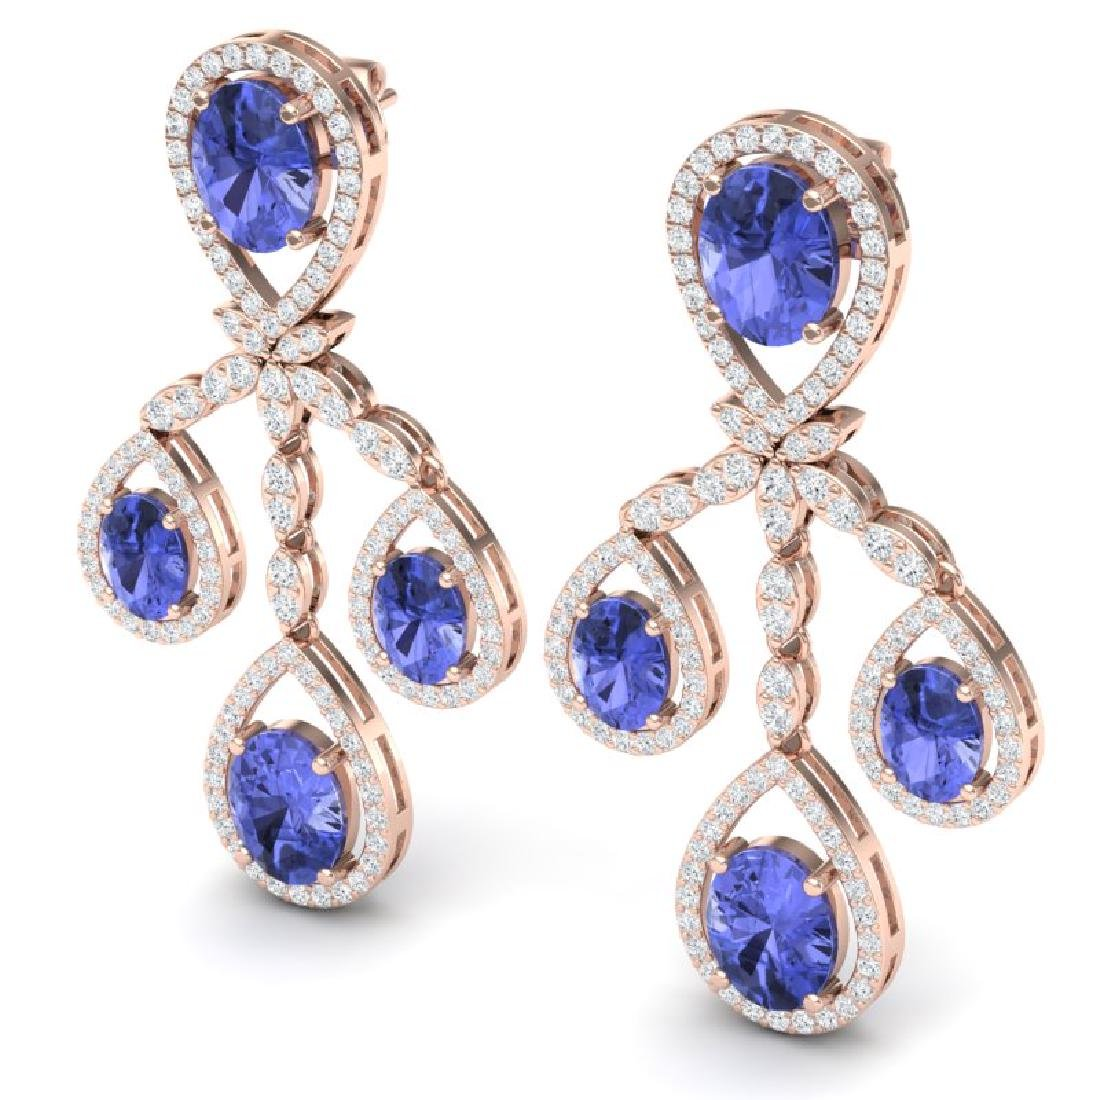 24.89 CTW Royalty Tanzanite & VS Diamond Earrings 18K - 2